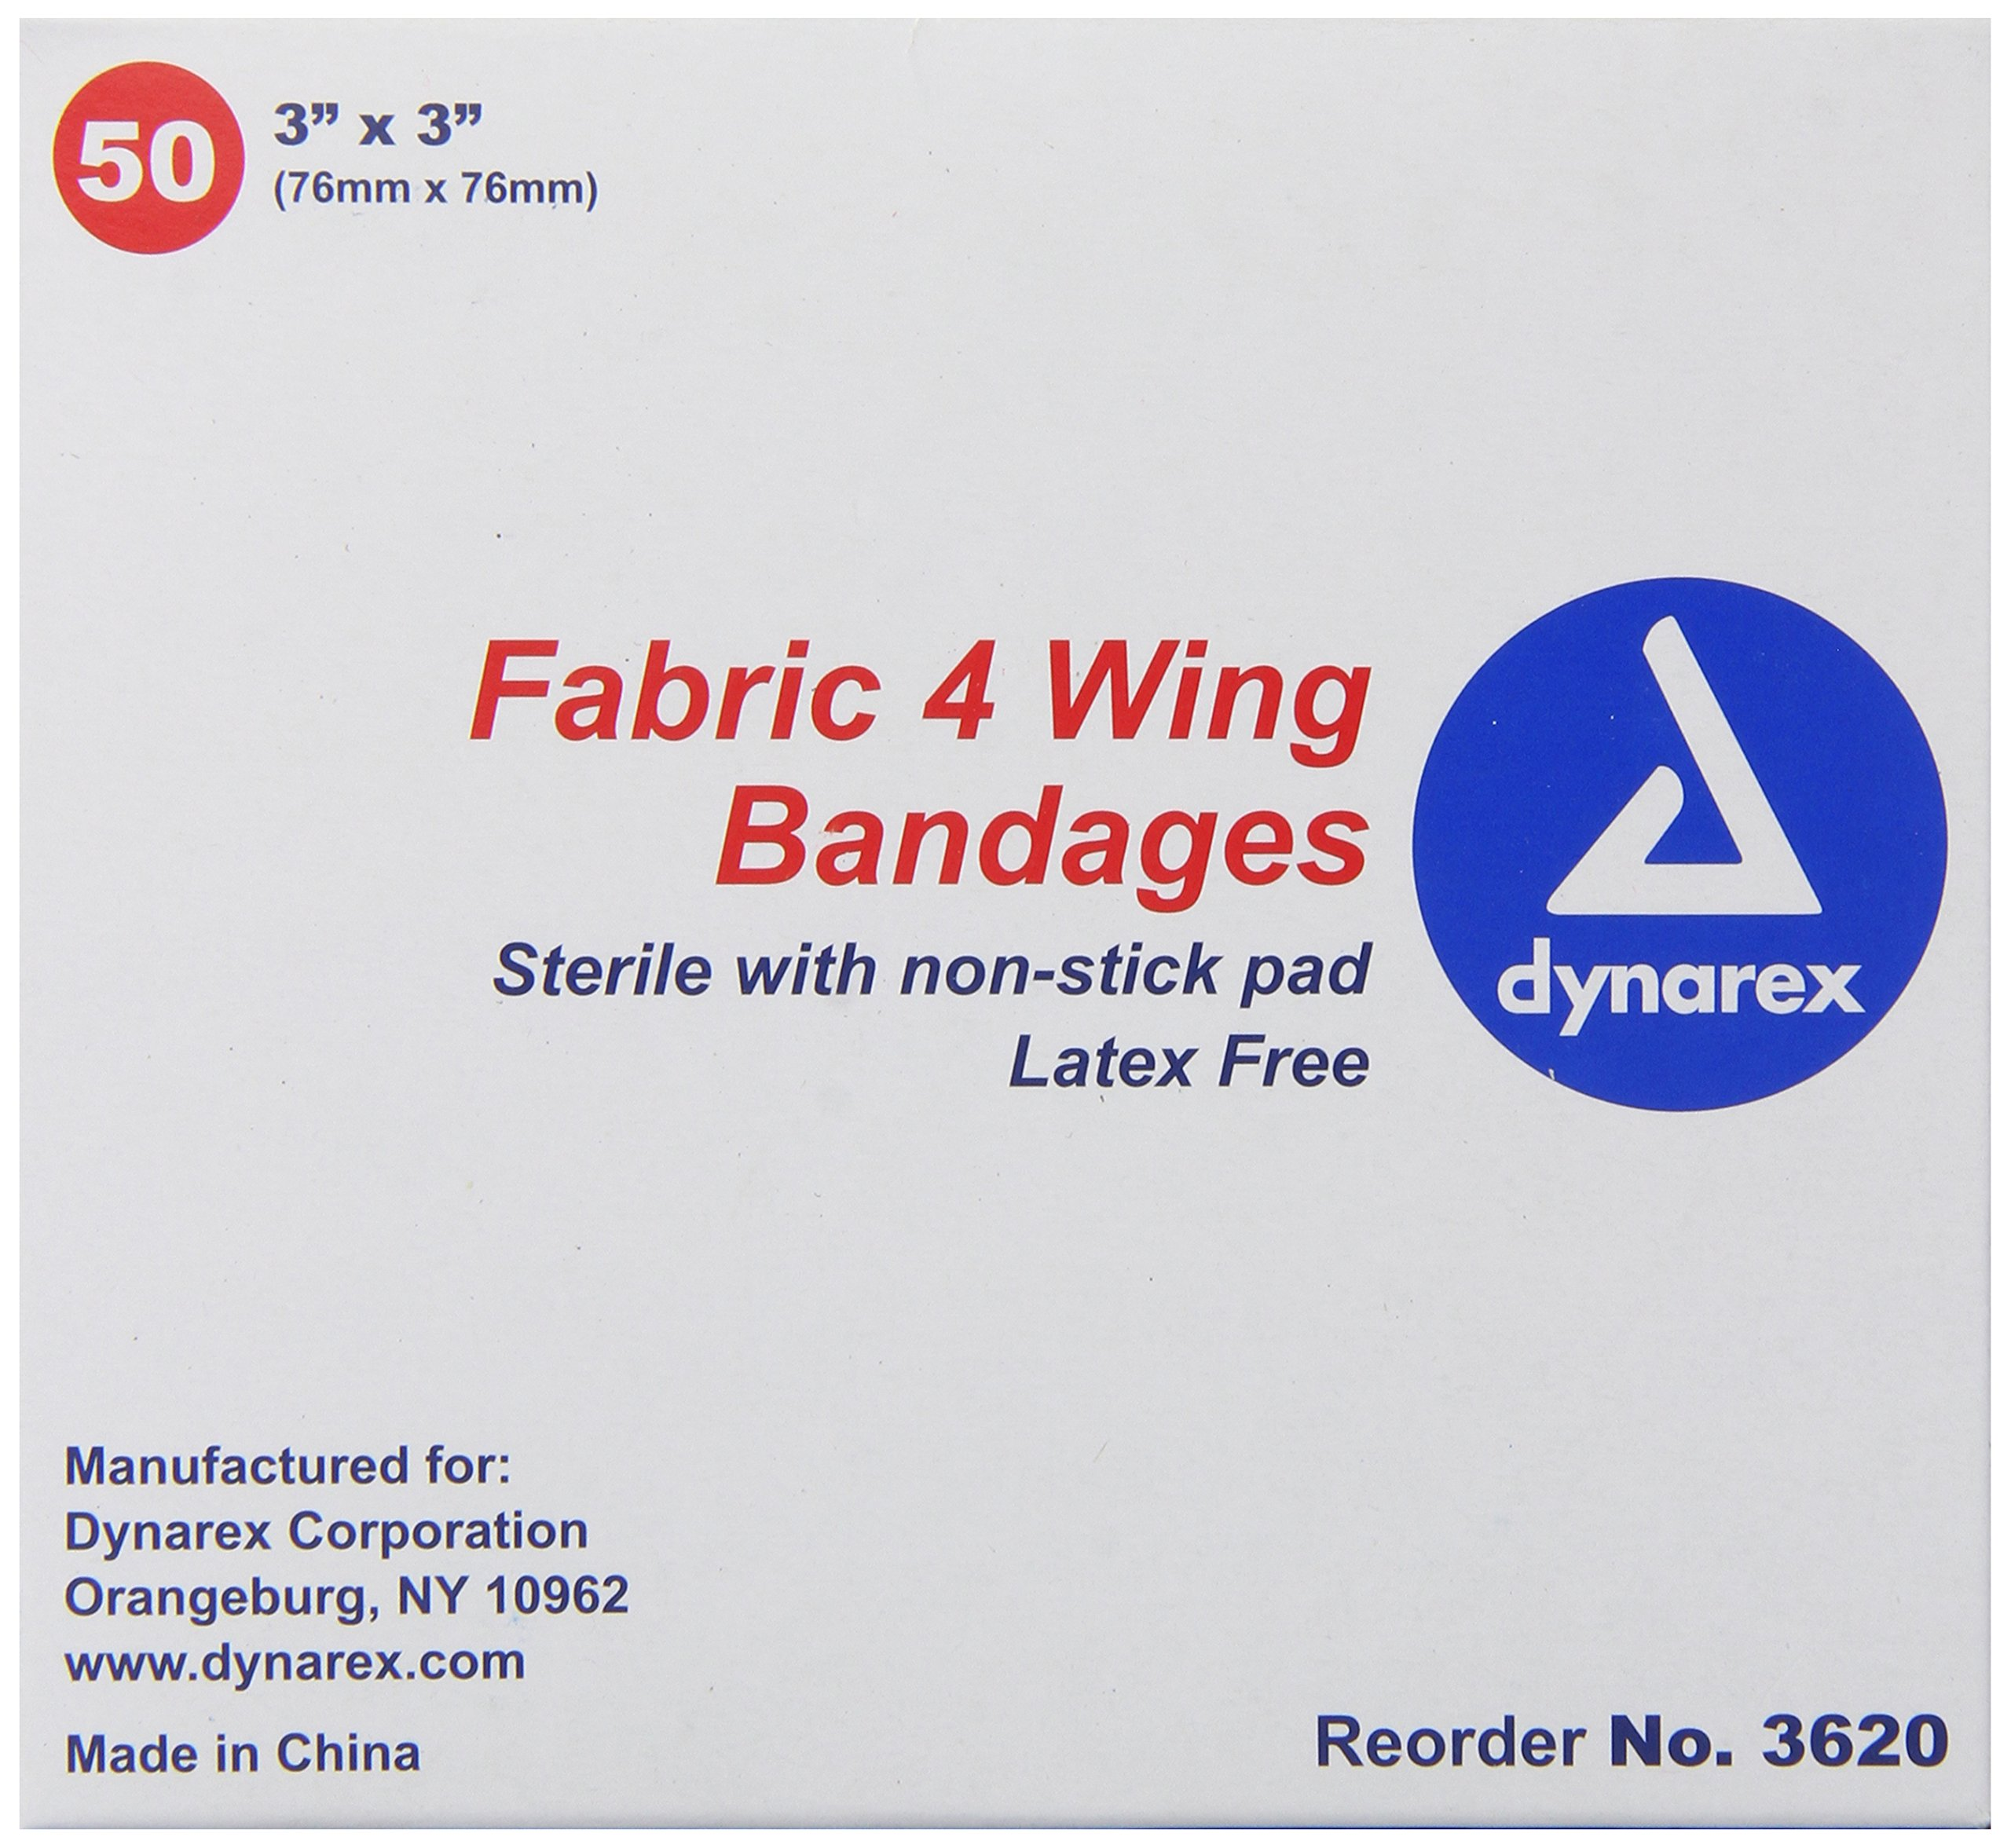 Dynarex Adhesive Fabric Bandage, 3 Inches X 3 Inches Sterile, 4 Wing, 50 Count